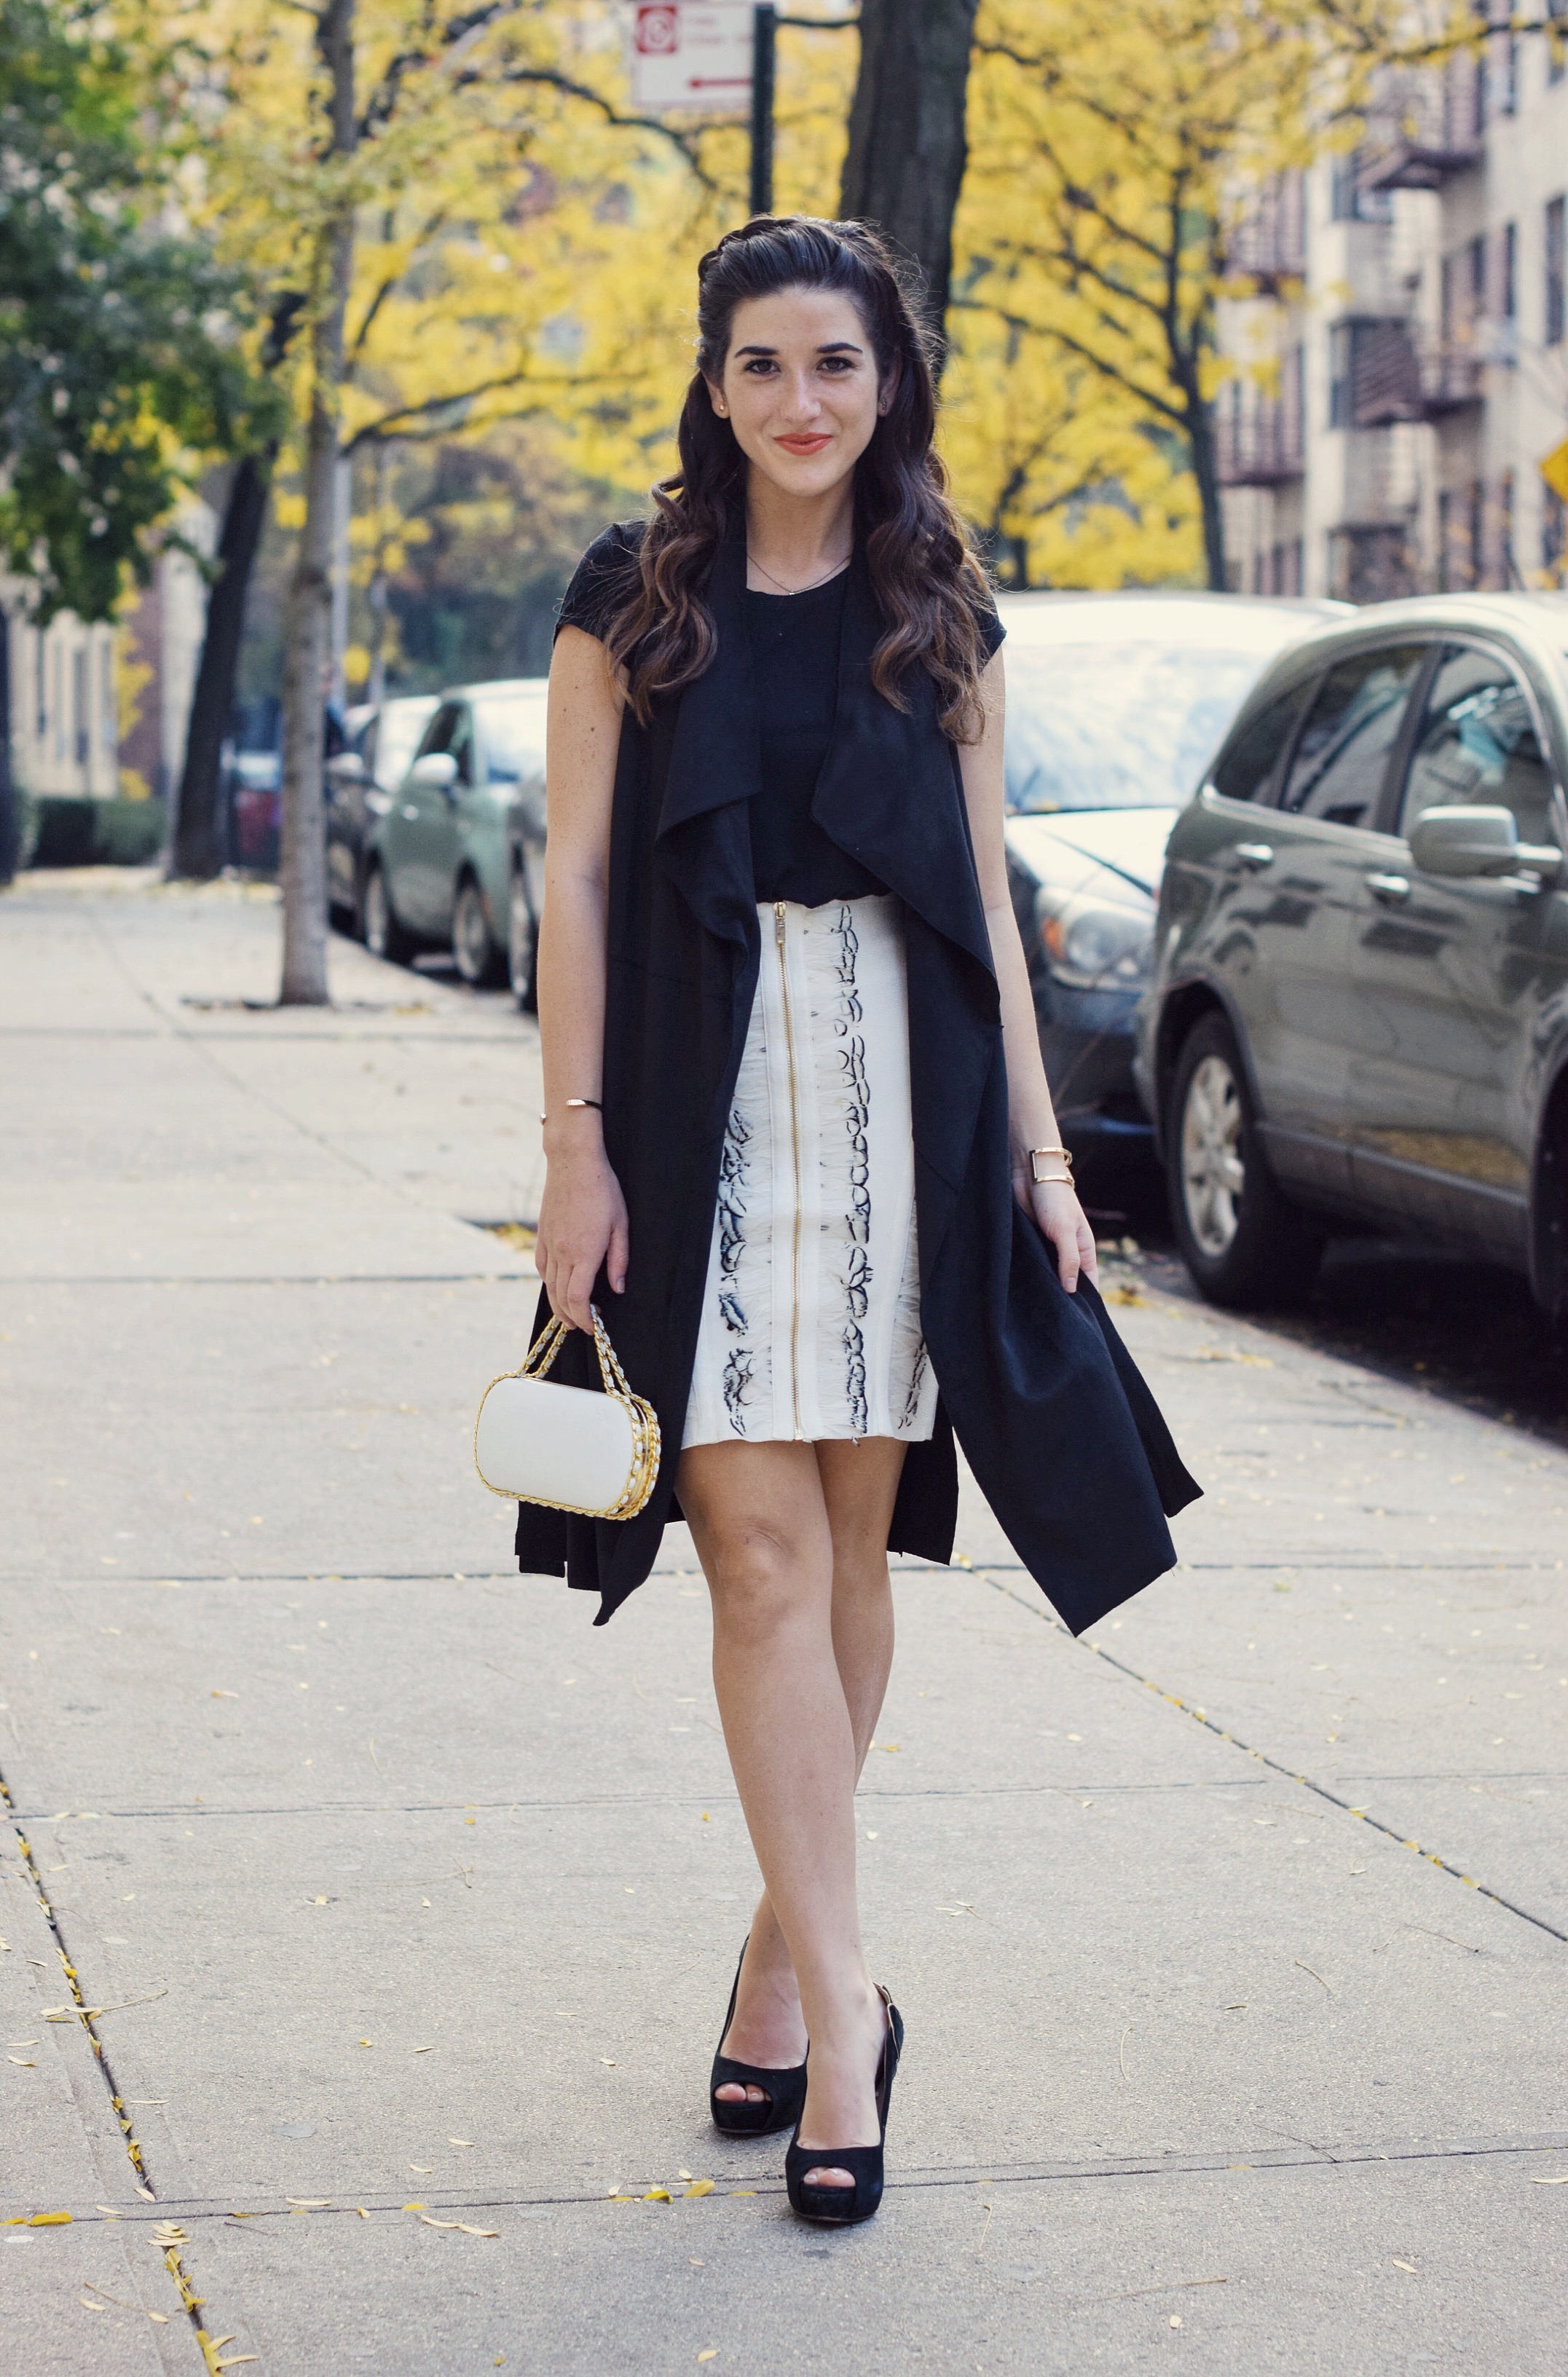 White Feather Skirt Long Black Vest Wow Couture Louboutins & Love Fashion Blog Esther Santer NYC Street Style Blogger Photoshoot Hairstyle Inspo Heels Gold Black Tee Zara Outfit OOTD Beauty Winter Fall Look Girl Women Model Erin Dana White Minaudiere.JPG